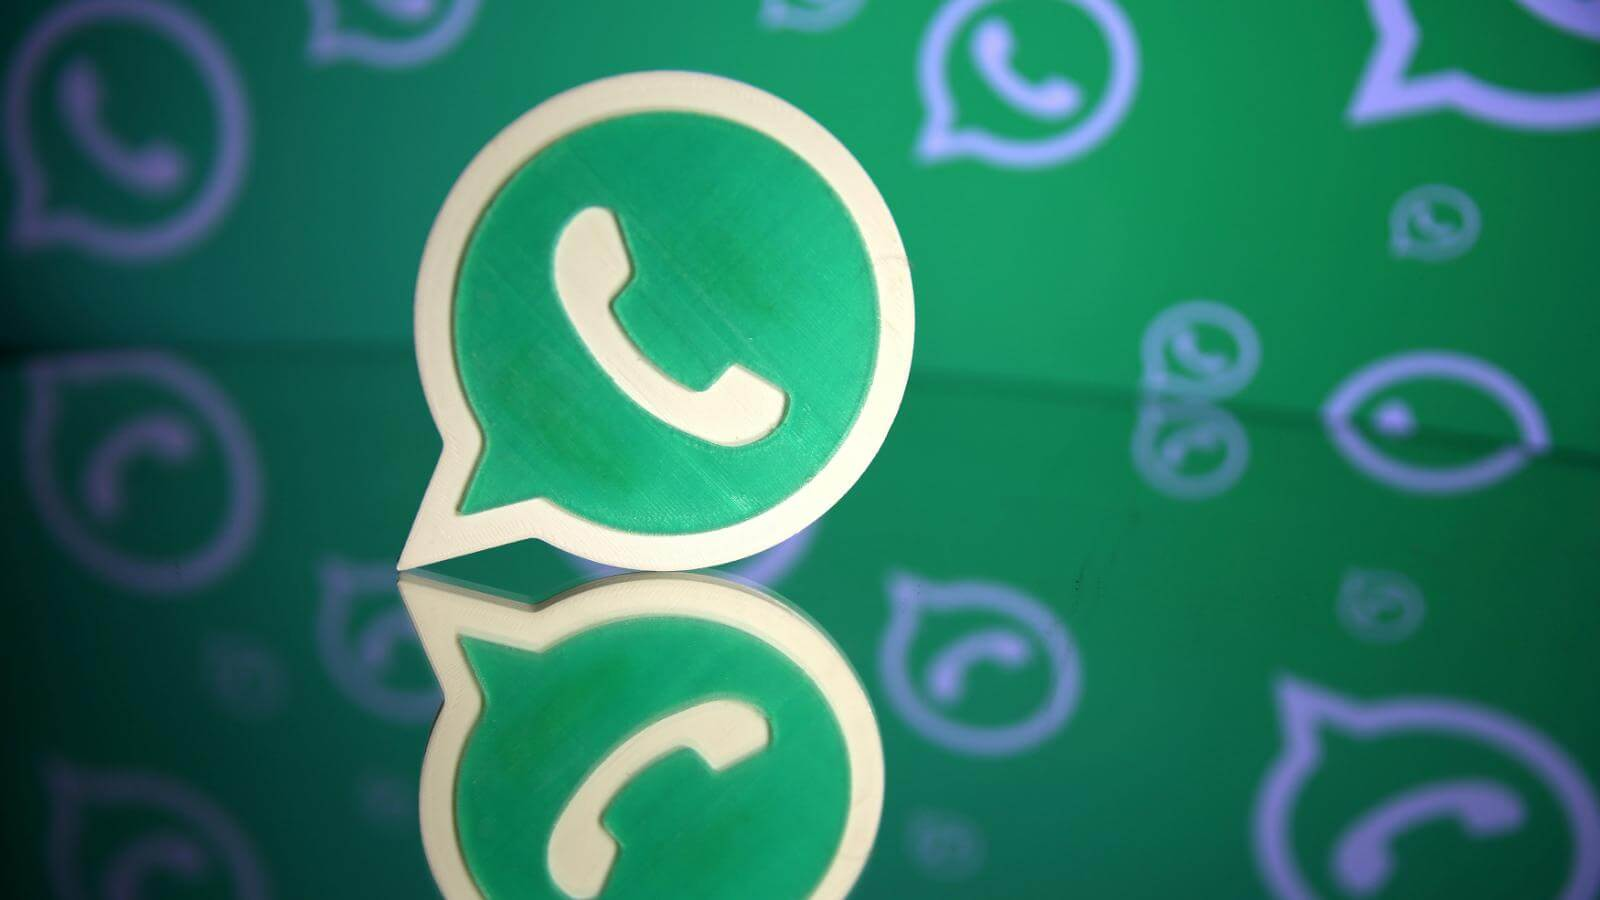 WhatsApp Gearing Up for Indian Elections